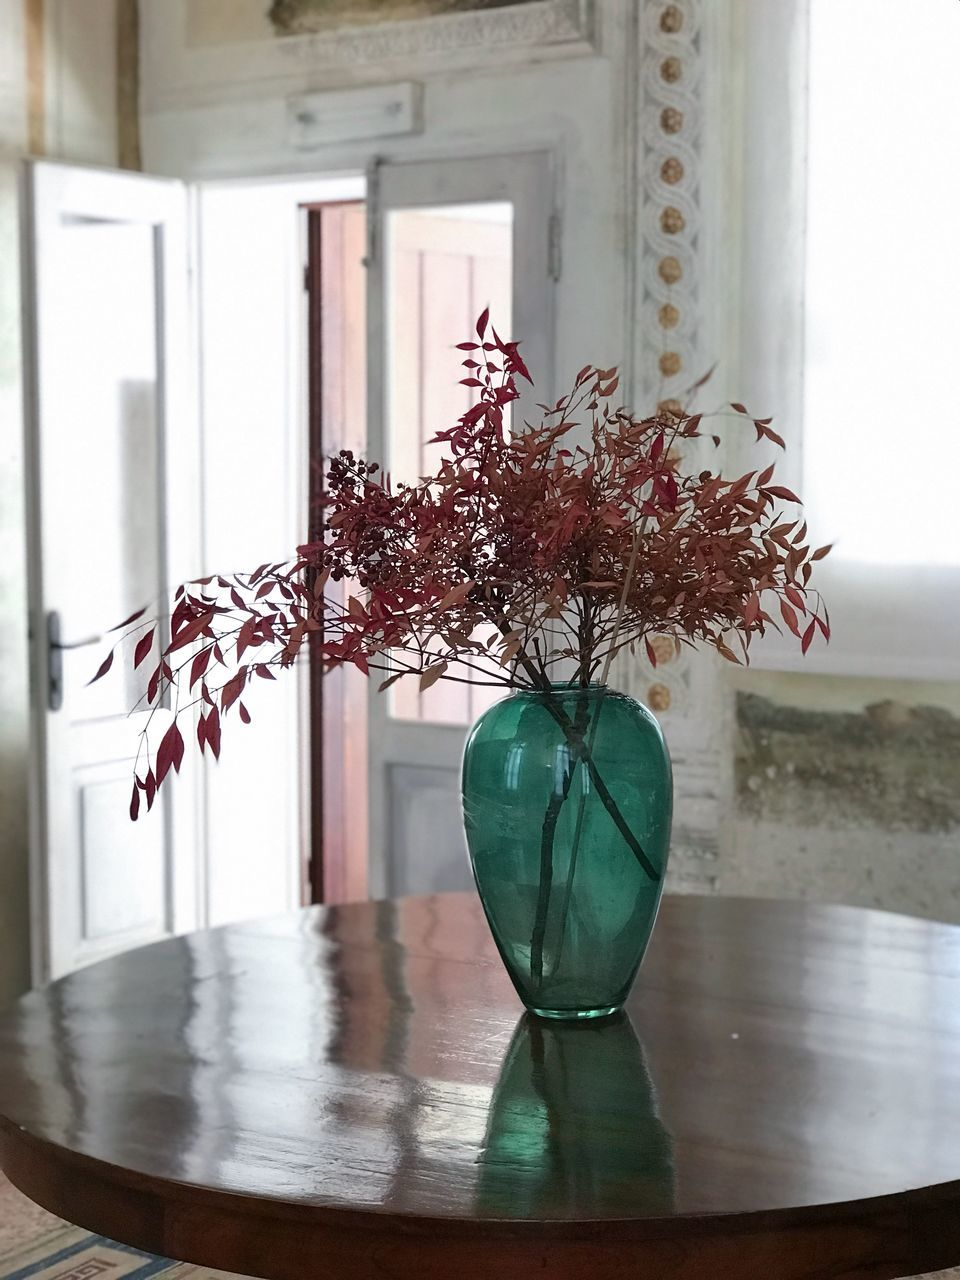 window, plant, no people, indoors, glass - material, table, nature, architecture, vase, day, home interior, flower, built structure, flowering plant, growth, fragility, focus on foreground, transparent, decoration